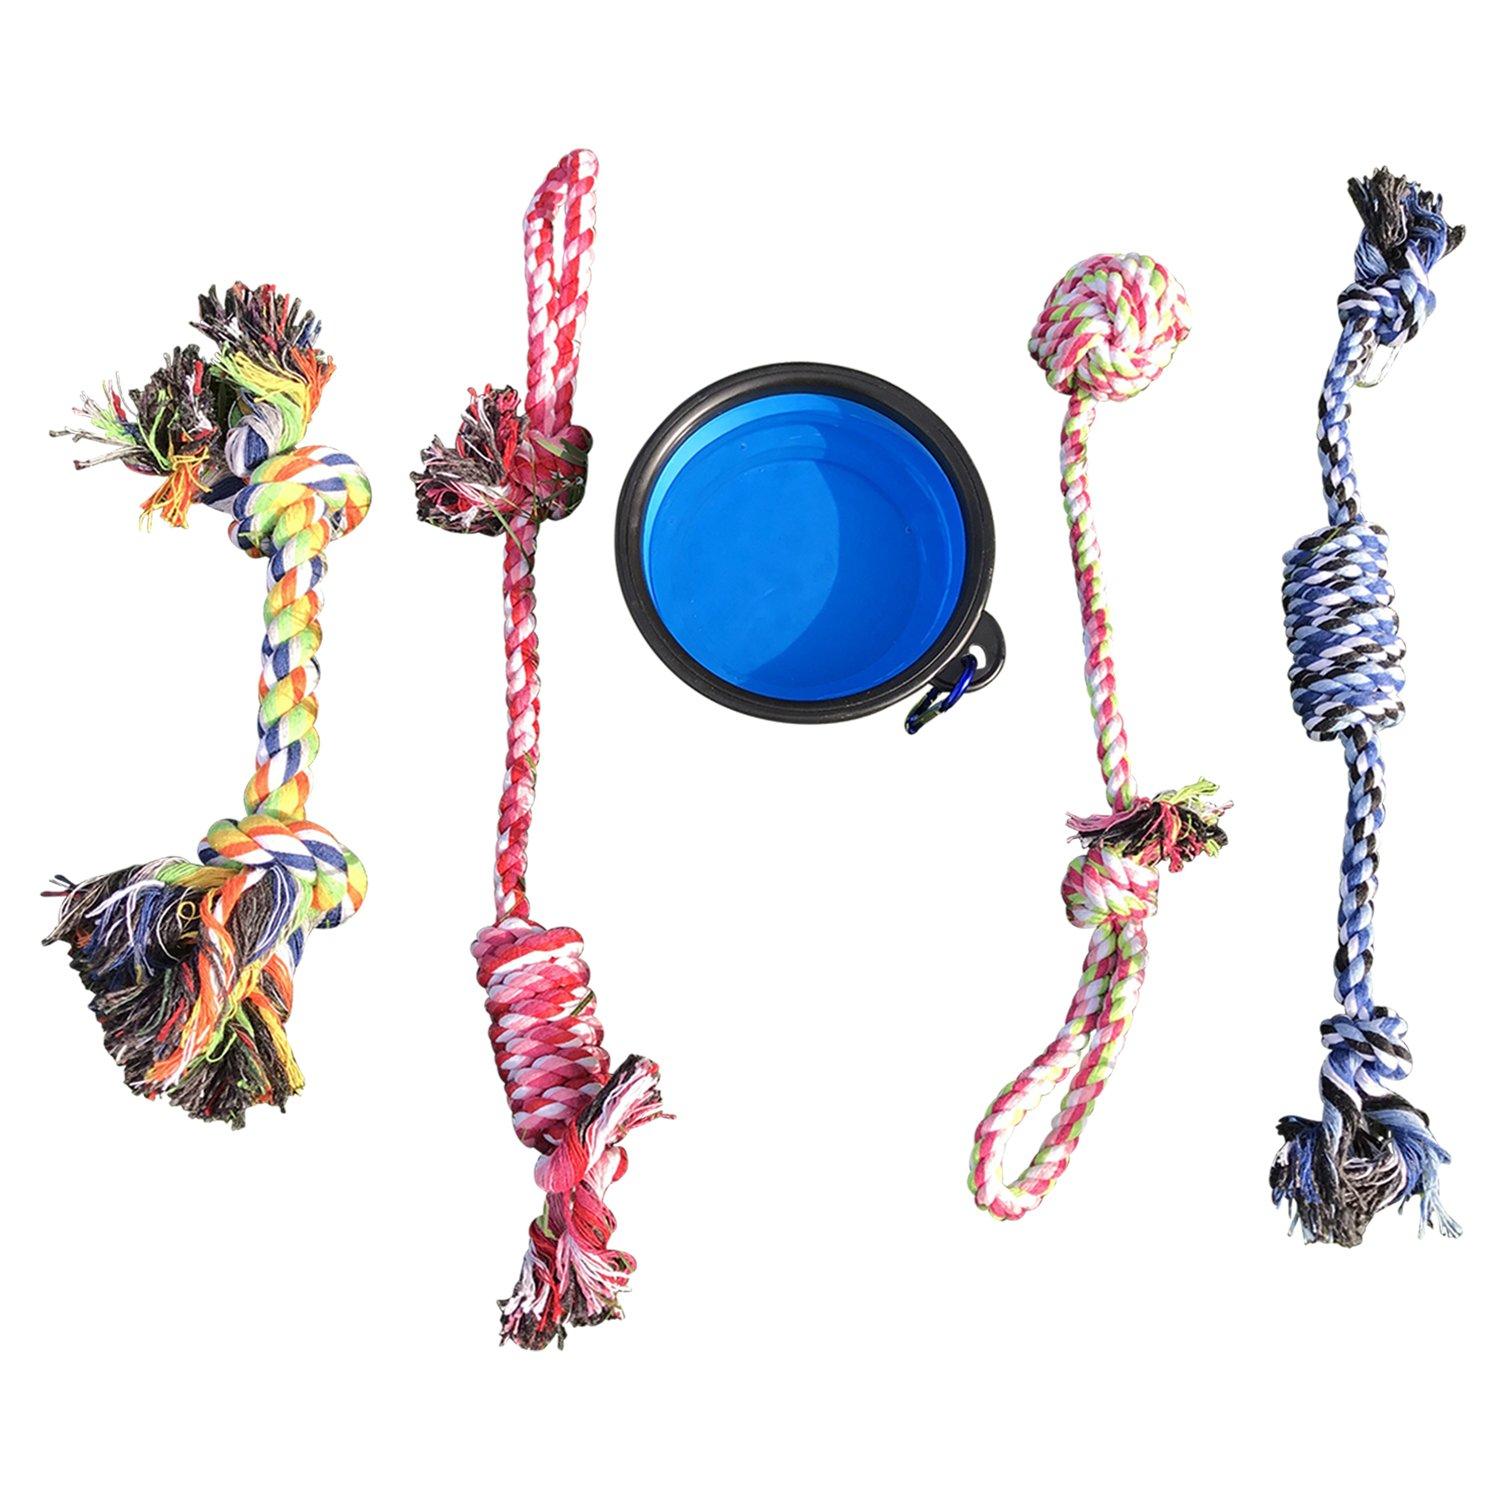 WOOF EXPRESS Dog Rope Chew Toy for Pets (Puppy & Medium) Assorted Color (Set of 5) + BONUS Travel Bowl